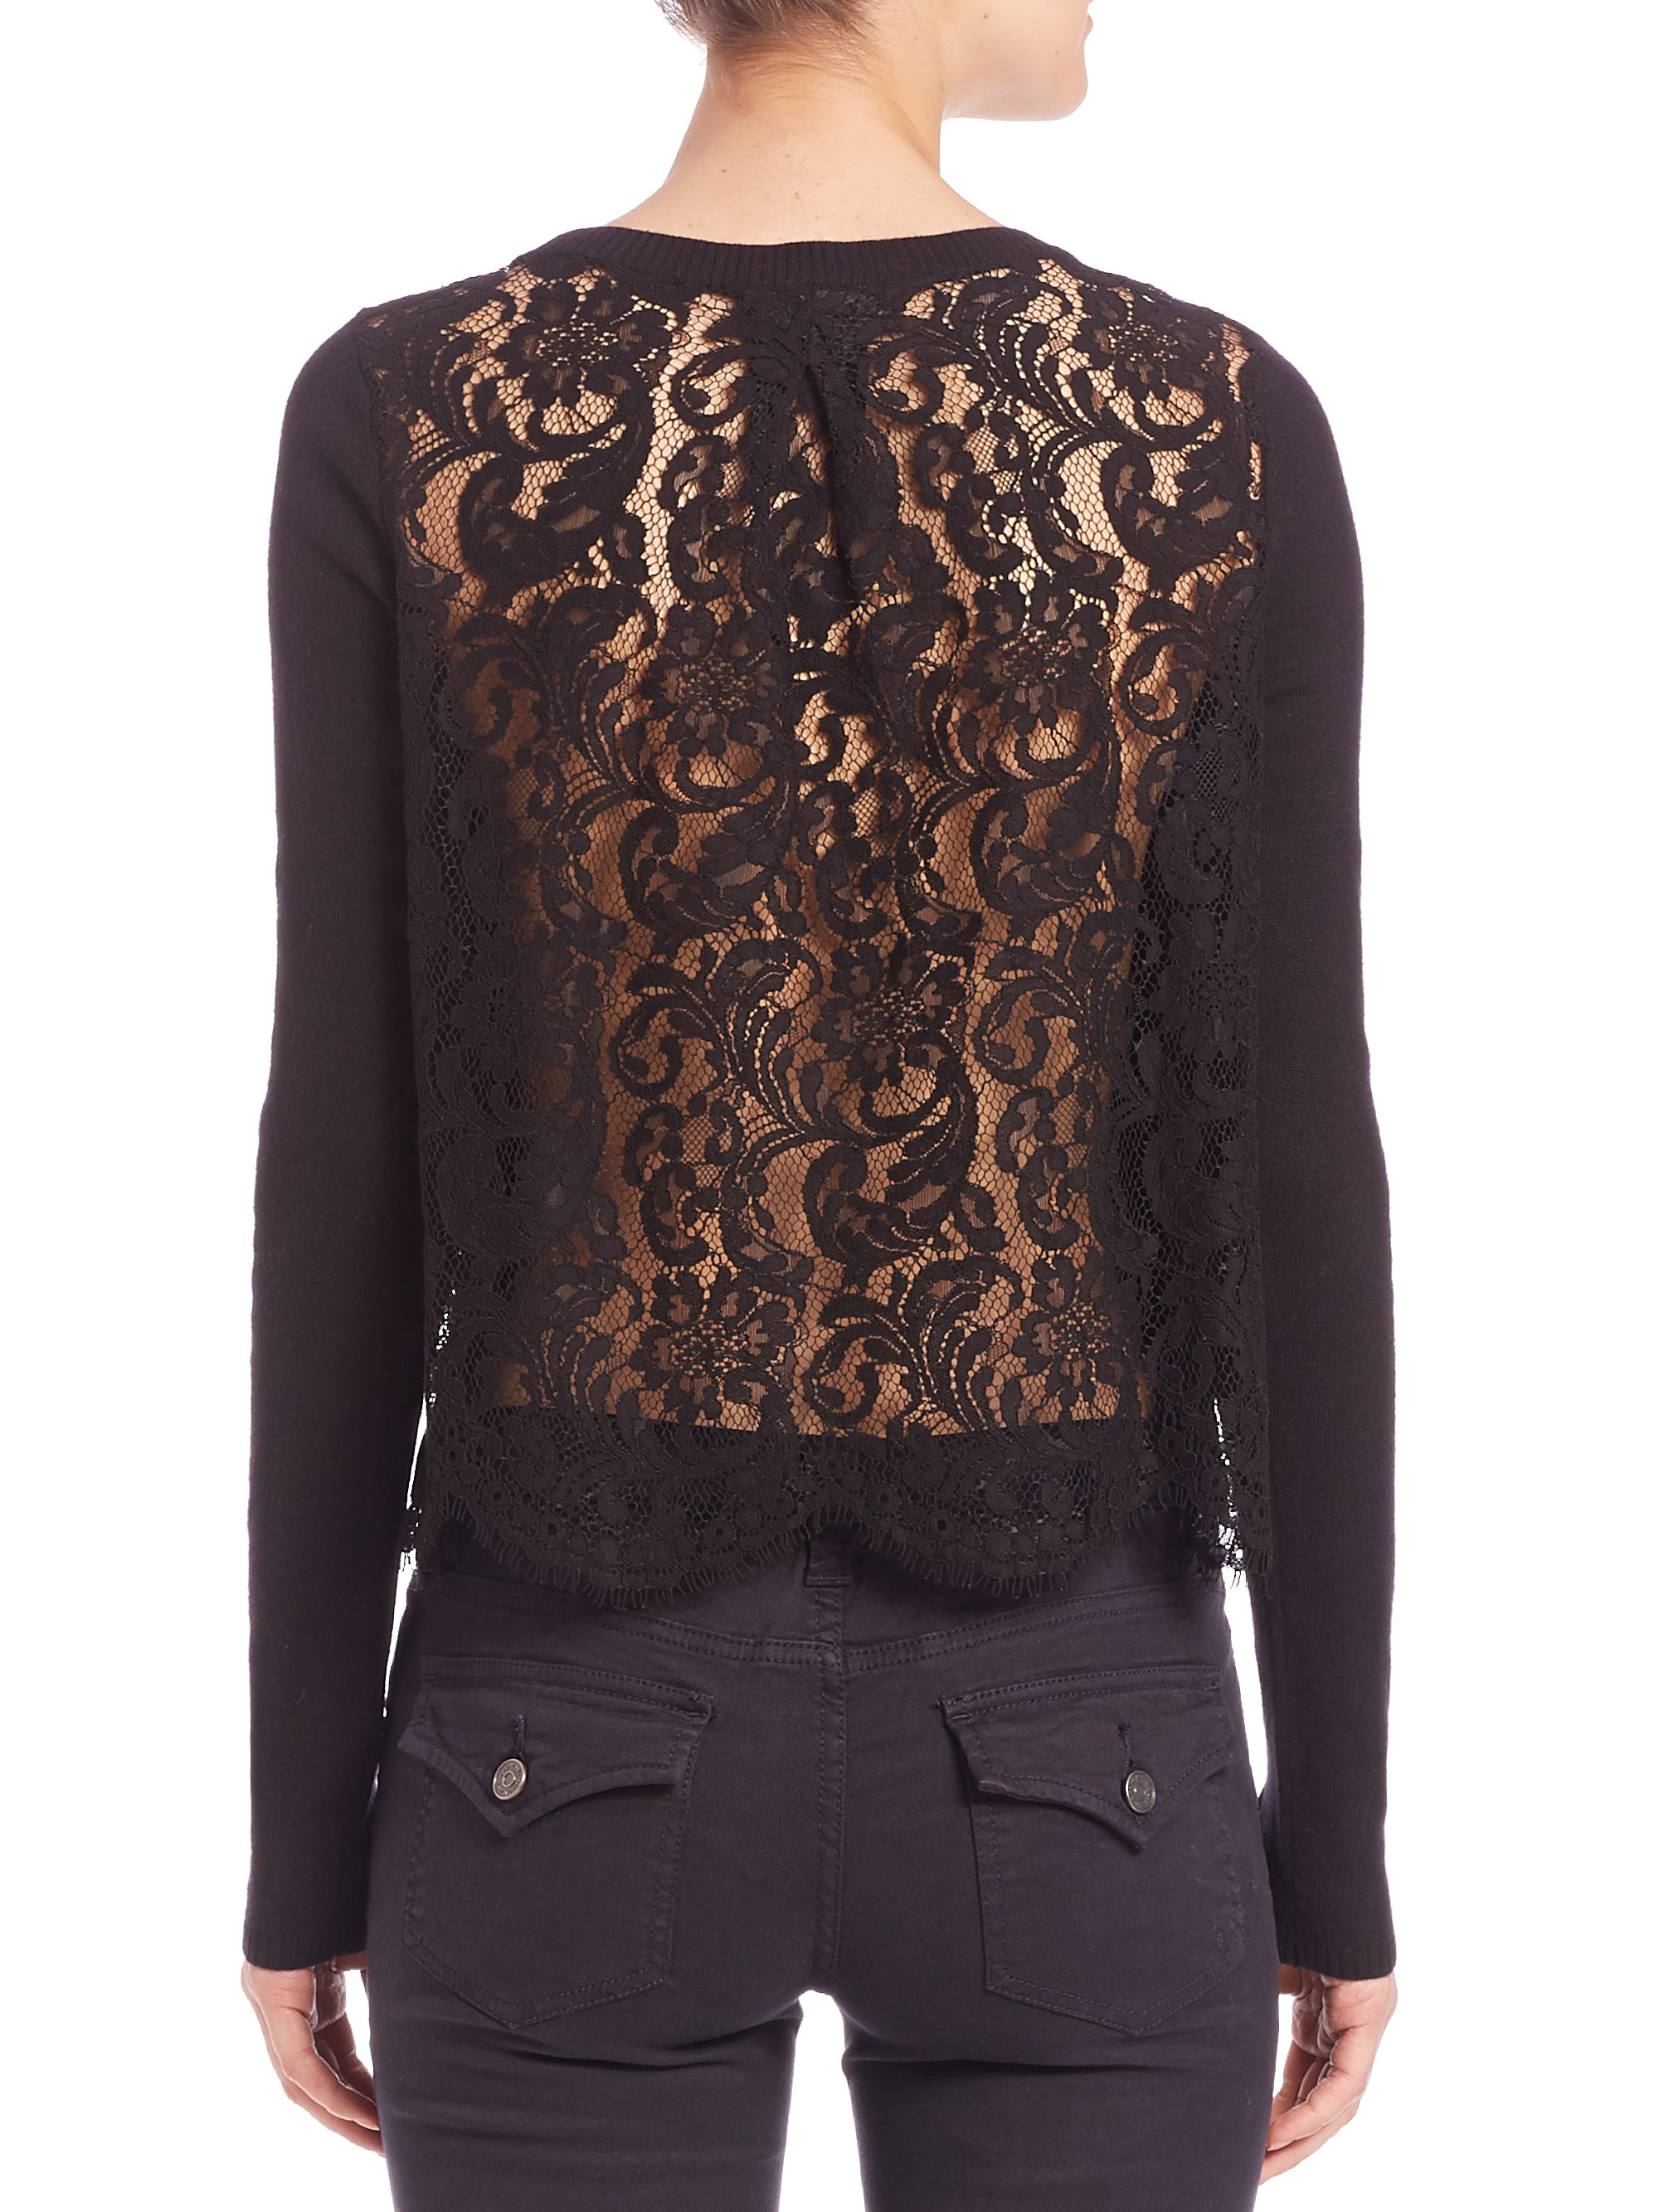 Joie Matrika Lace-back Sweater in Black | Lyst